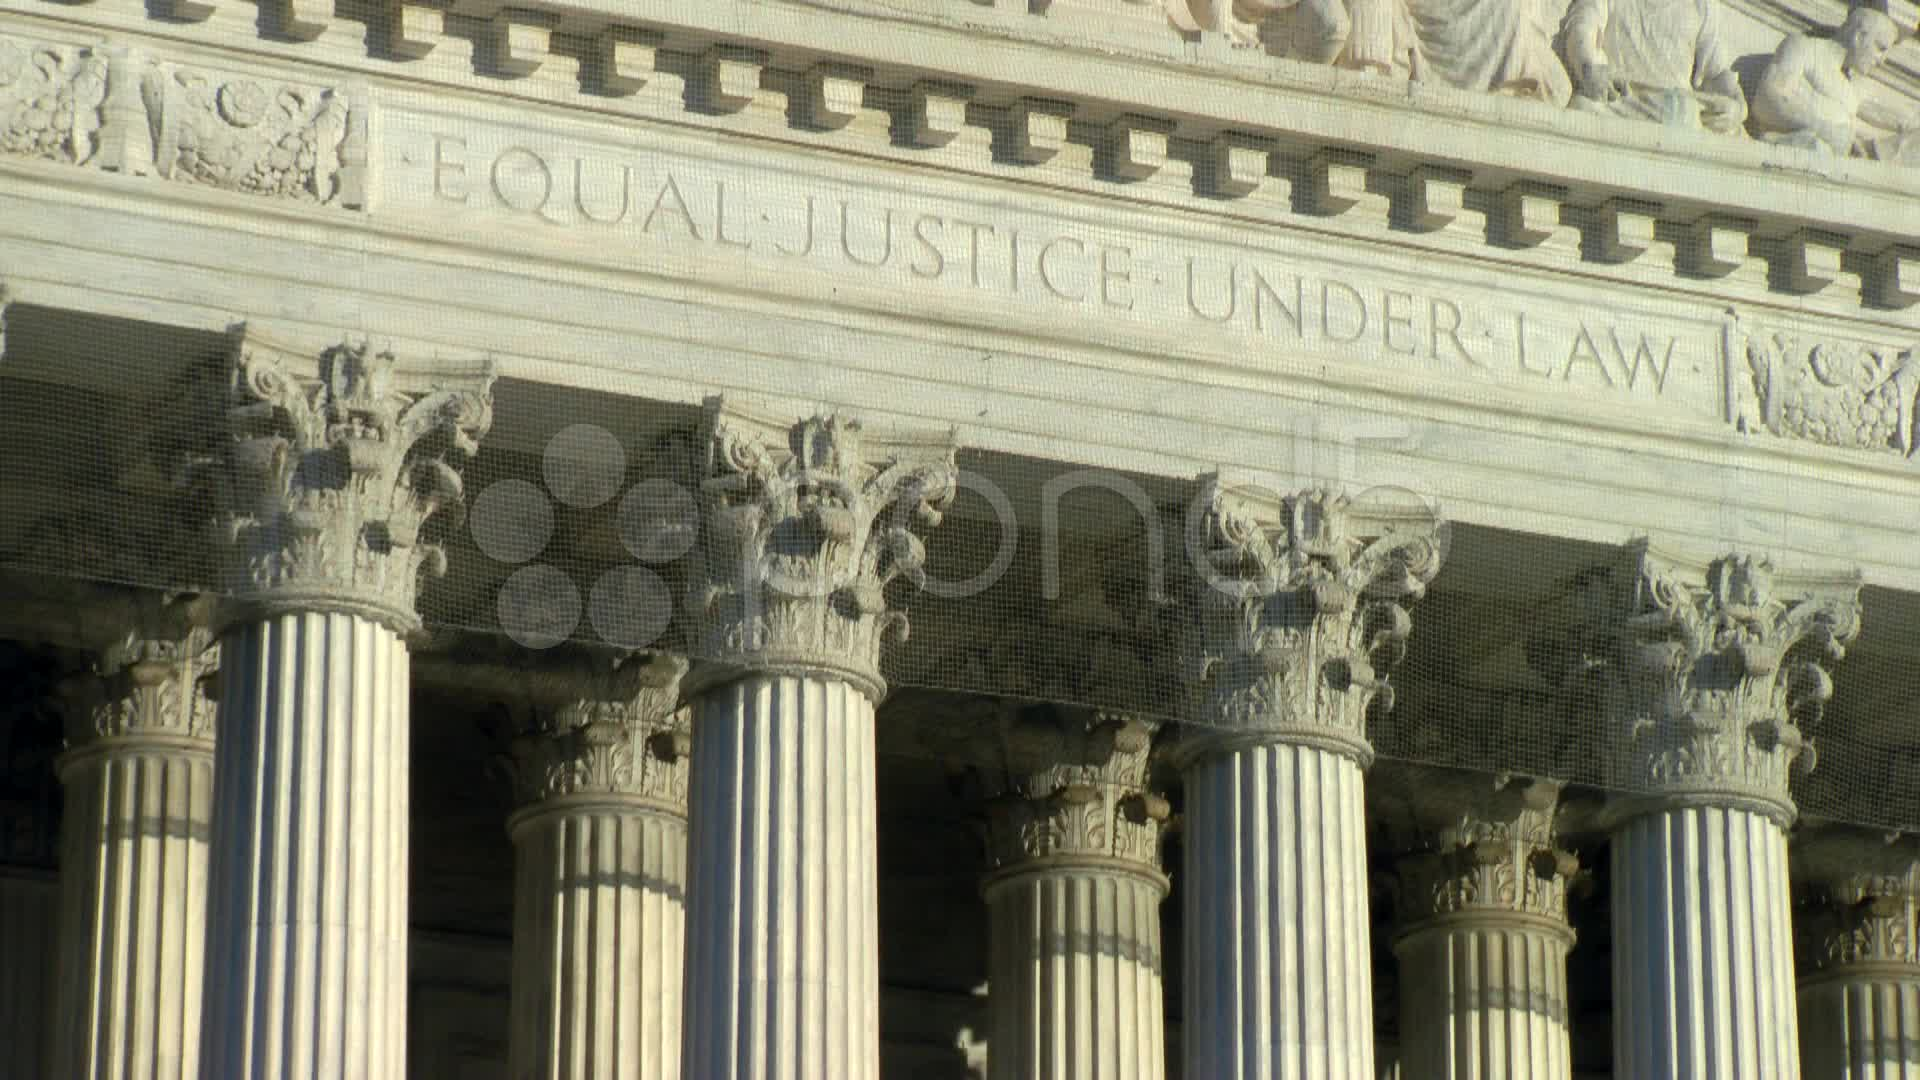 US Supreme Court   Equal Justice Under Law Footage 1920x1080